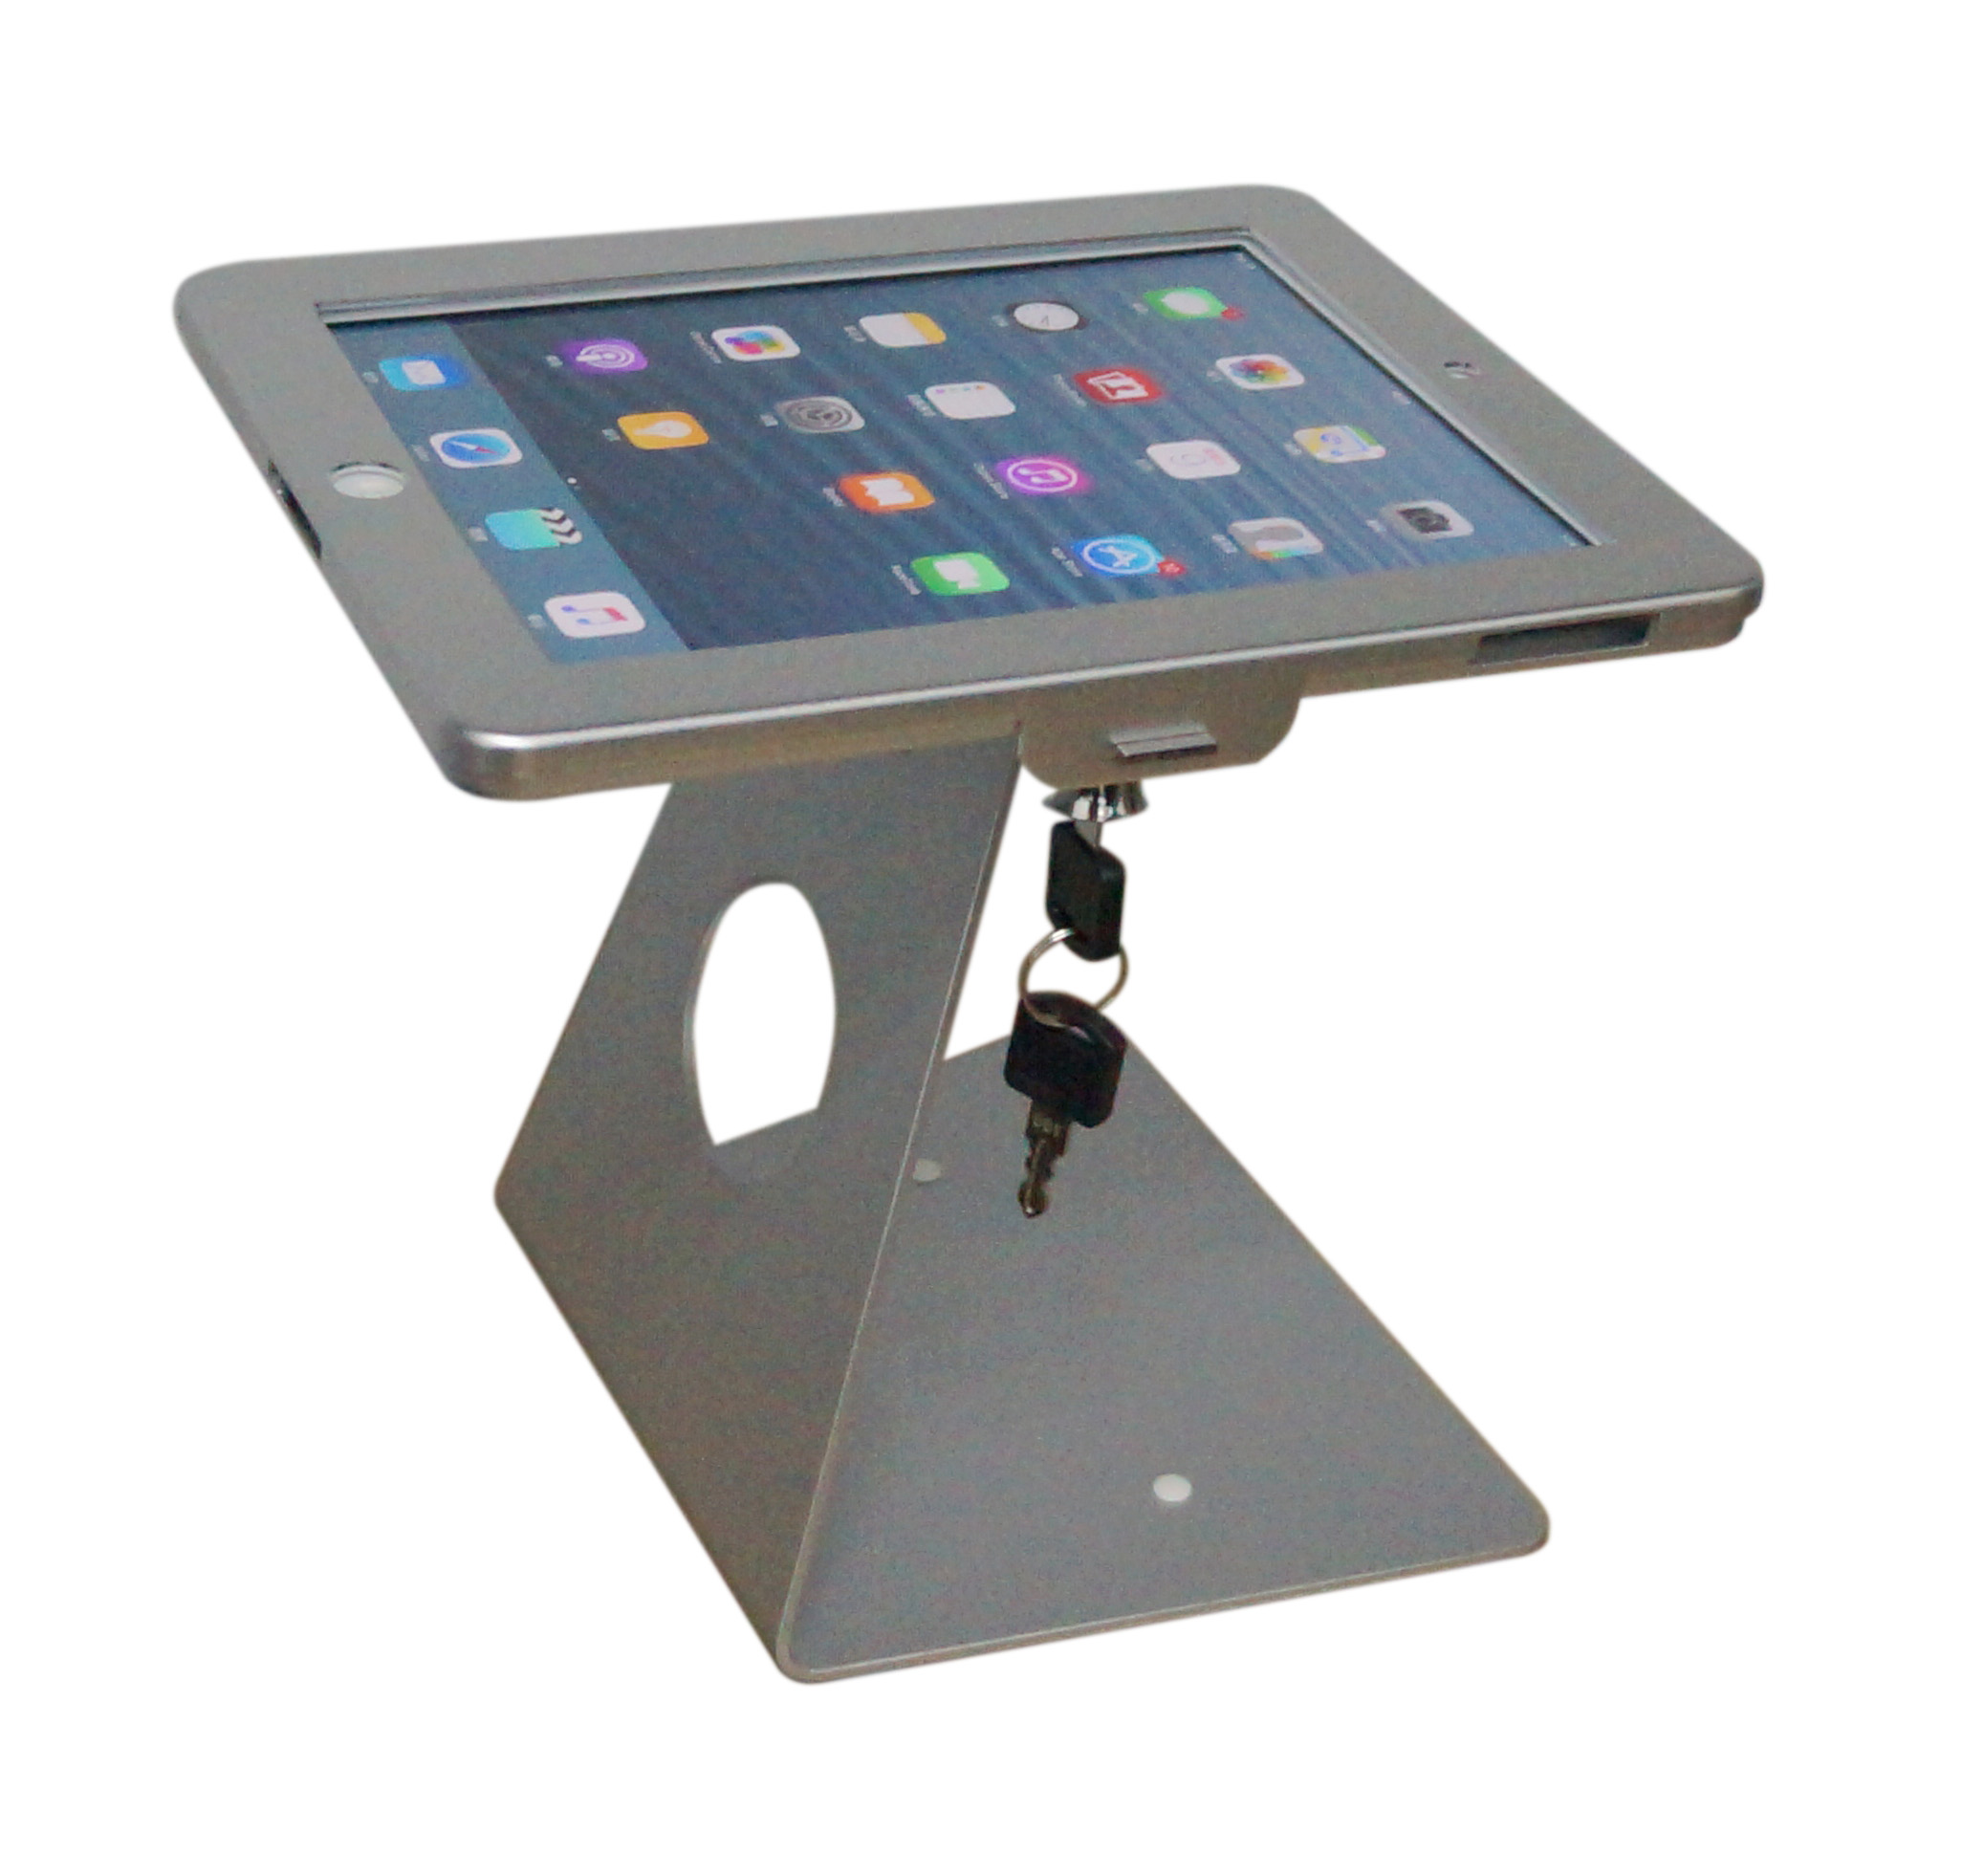 IPAD tabletop stand